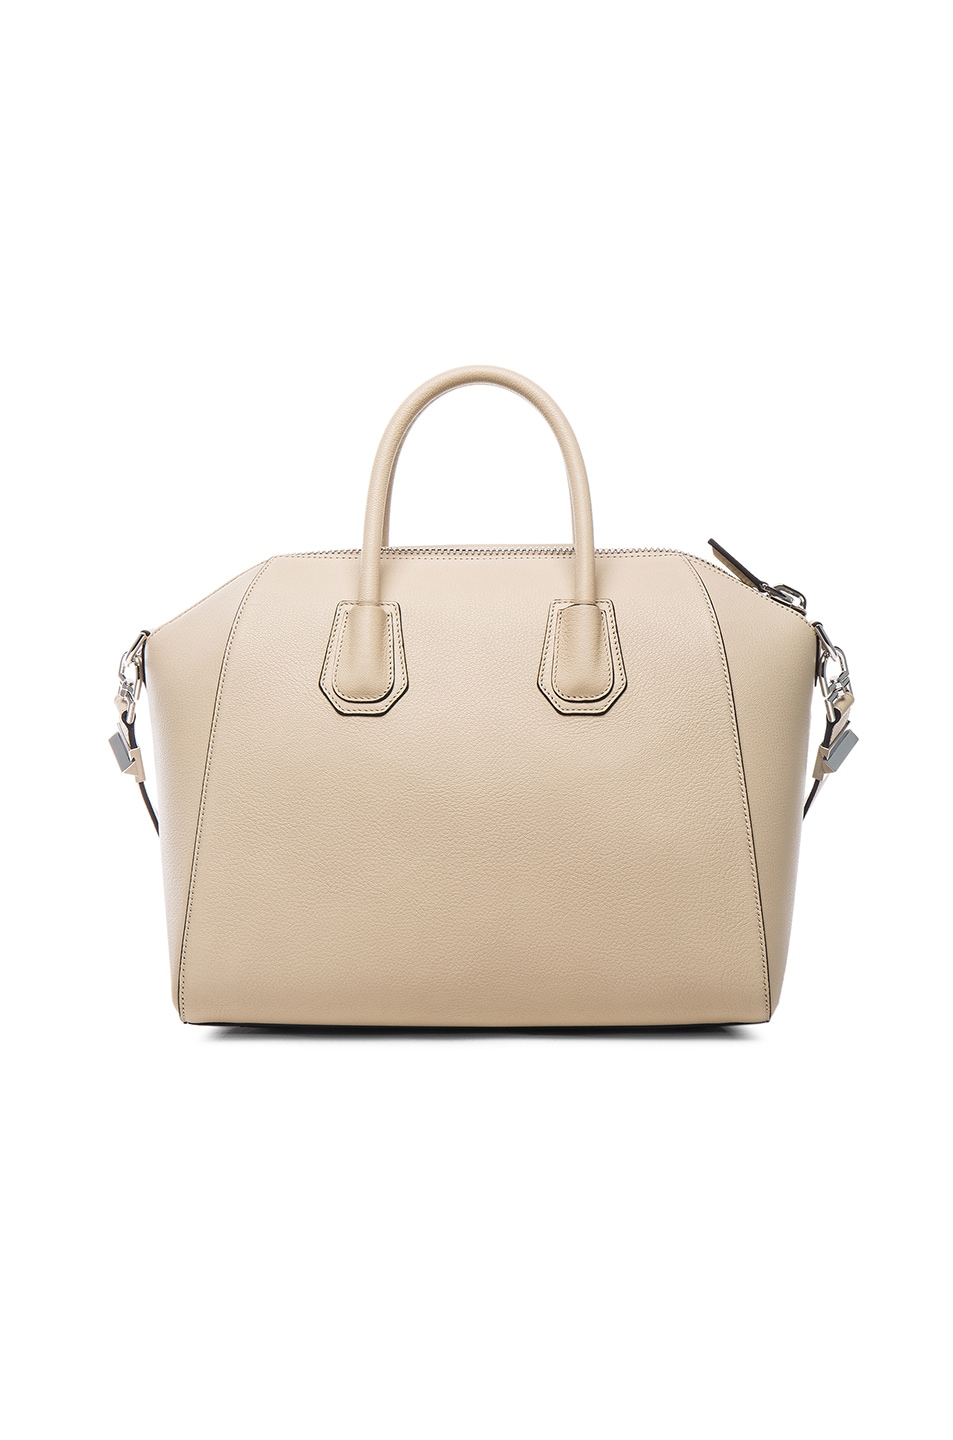 Image 3 of Givenchy Medium Antigona in Beige Buff